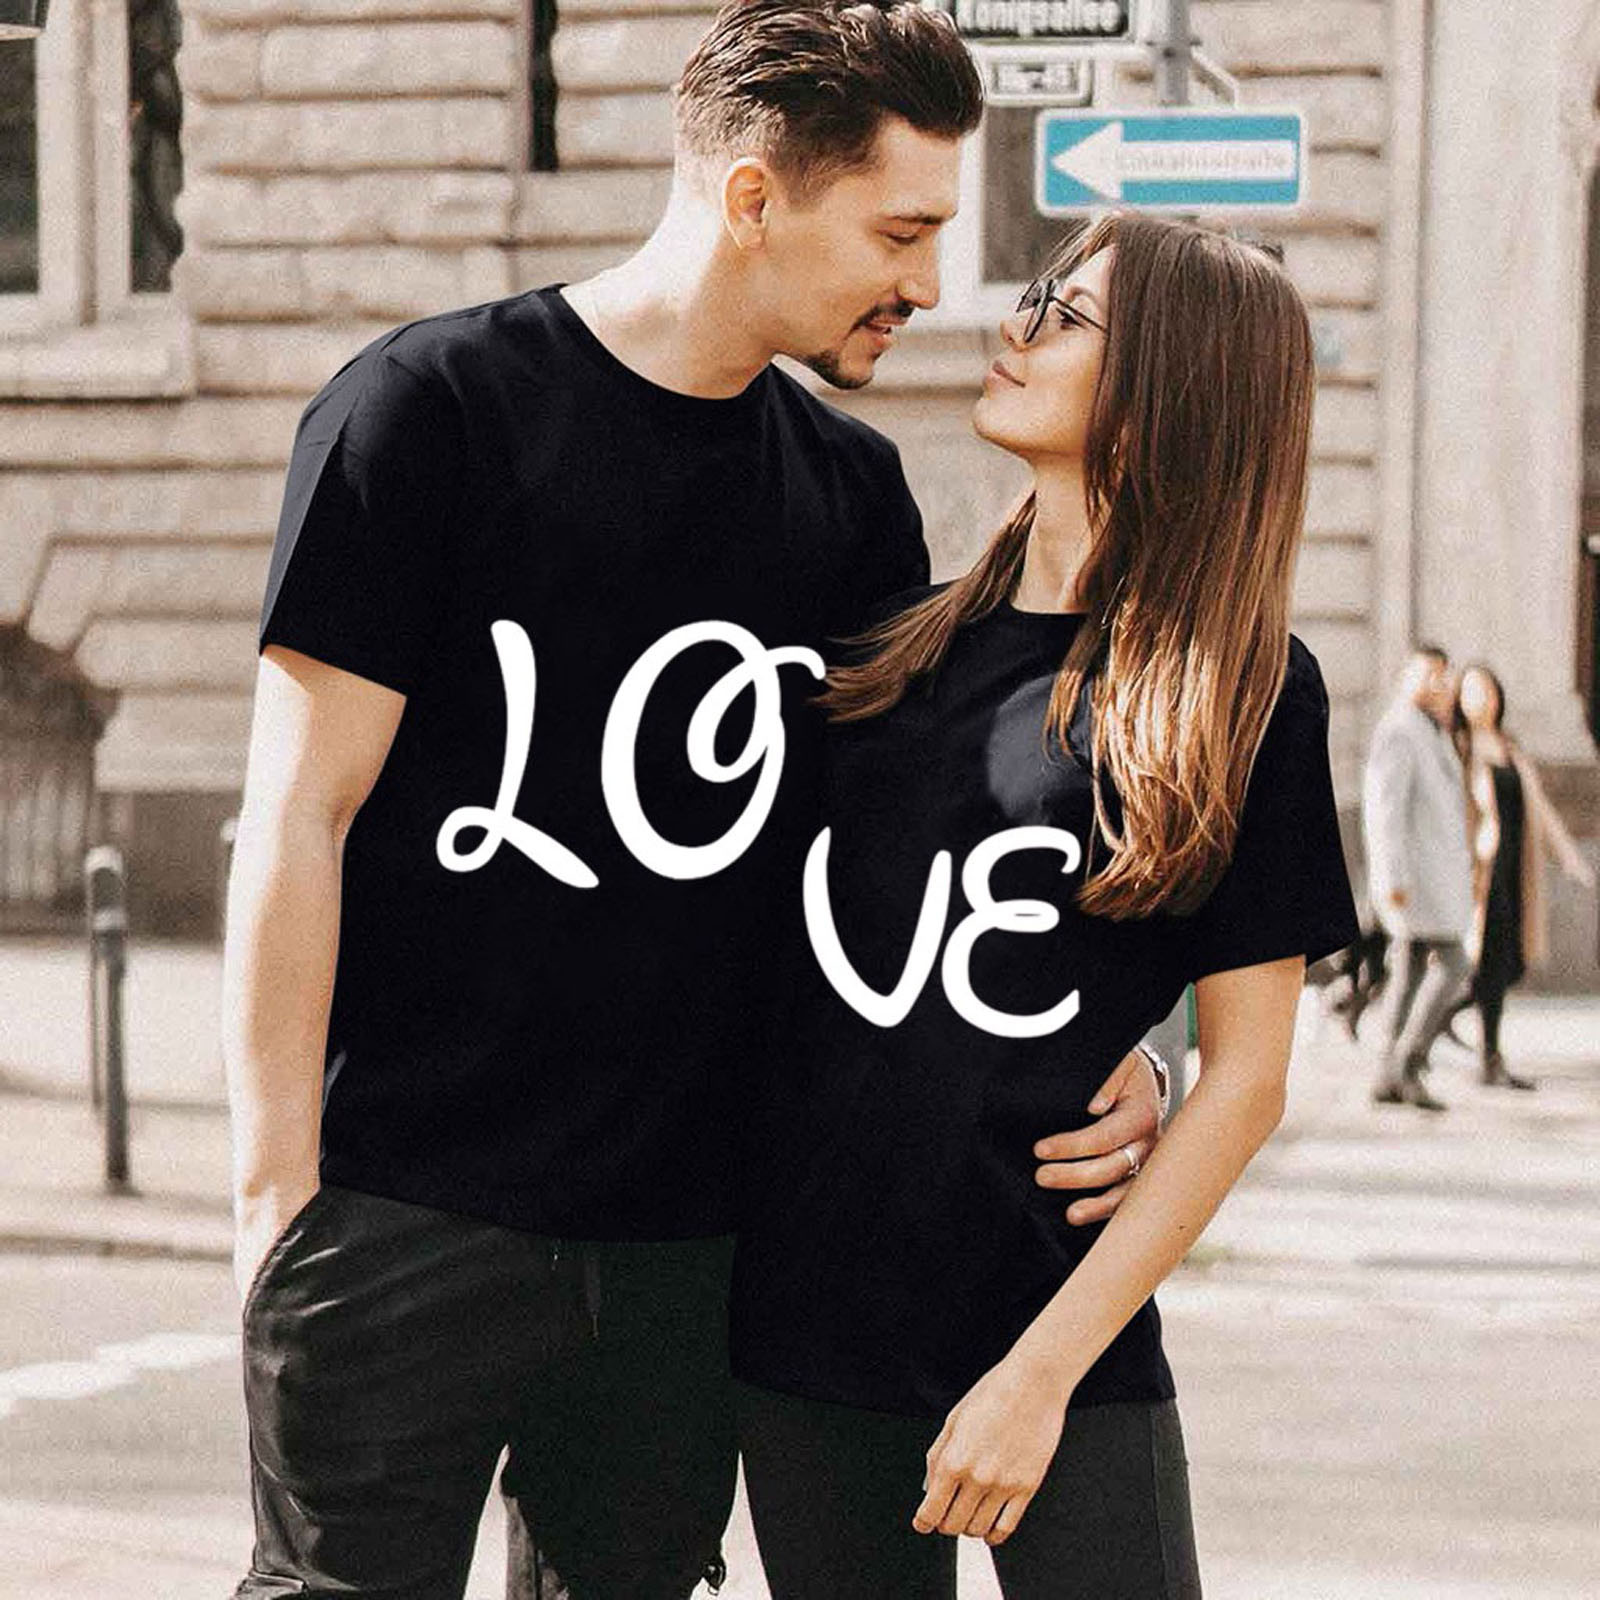 Couple Tshirts Summer Clothing Valentine's-Day-Letter-Printed Fashion Tops Short-Sleeve